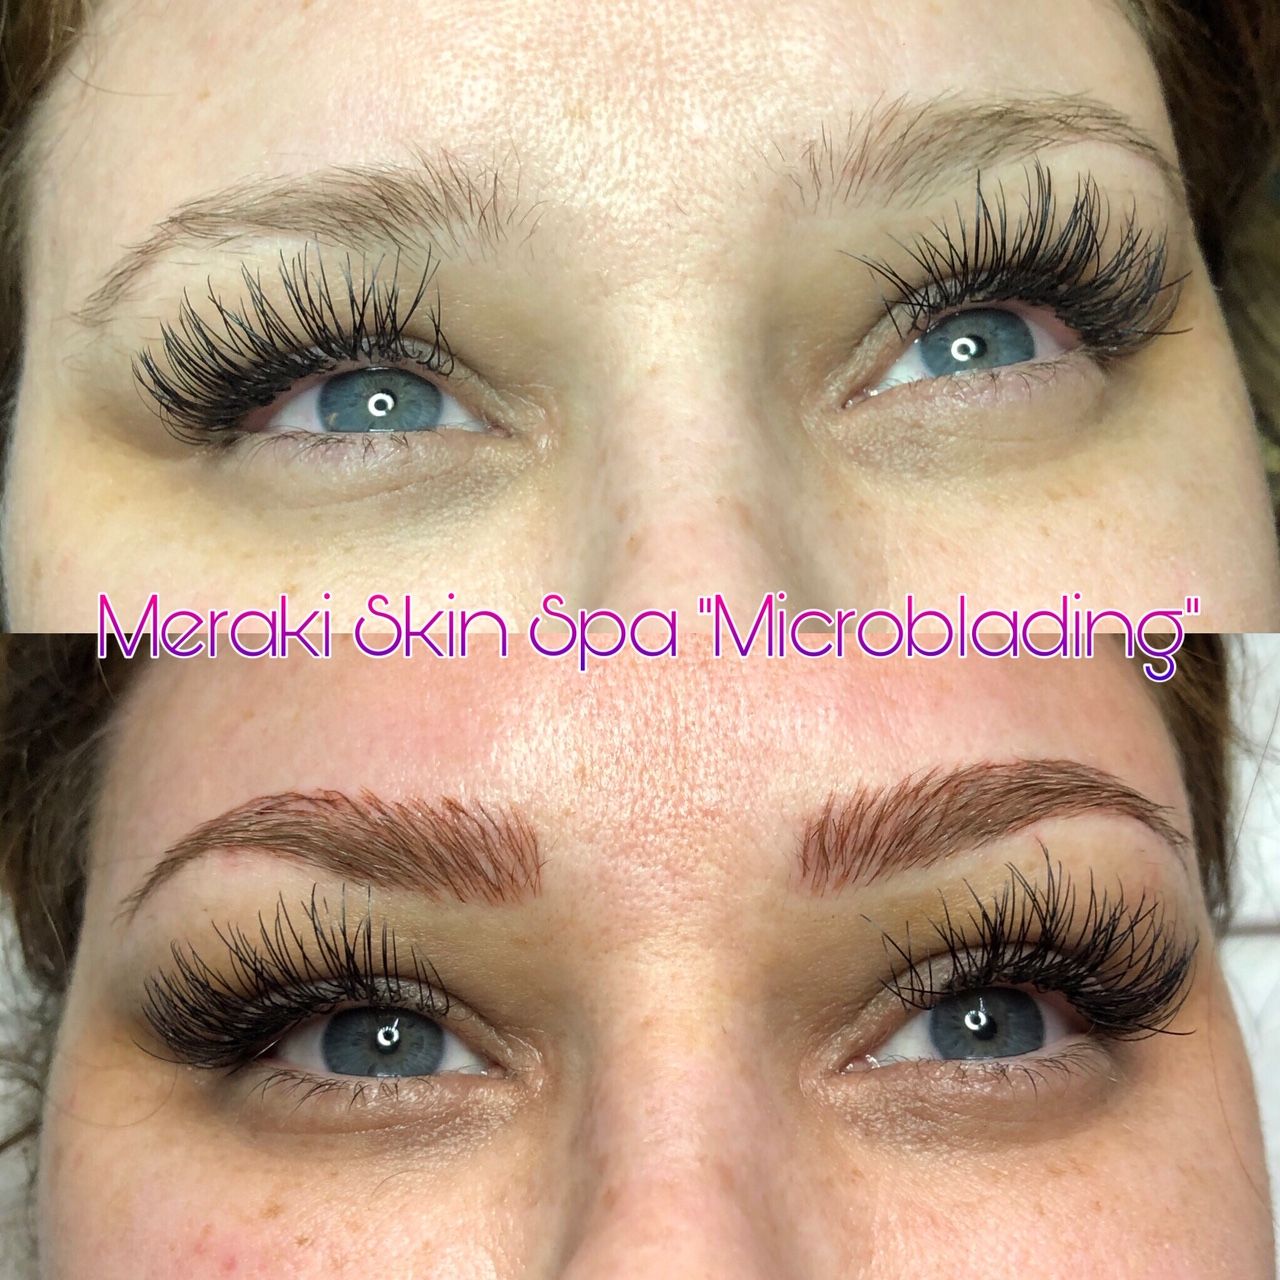 alt text microblading permanent tattooed eyebrows meridian Idaho